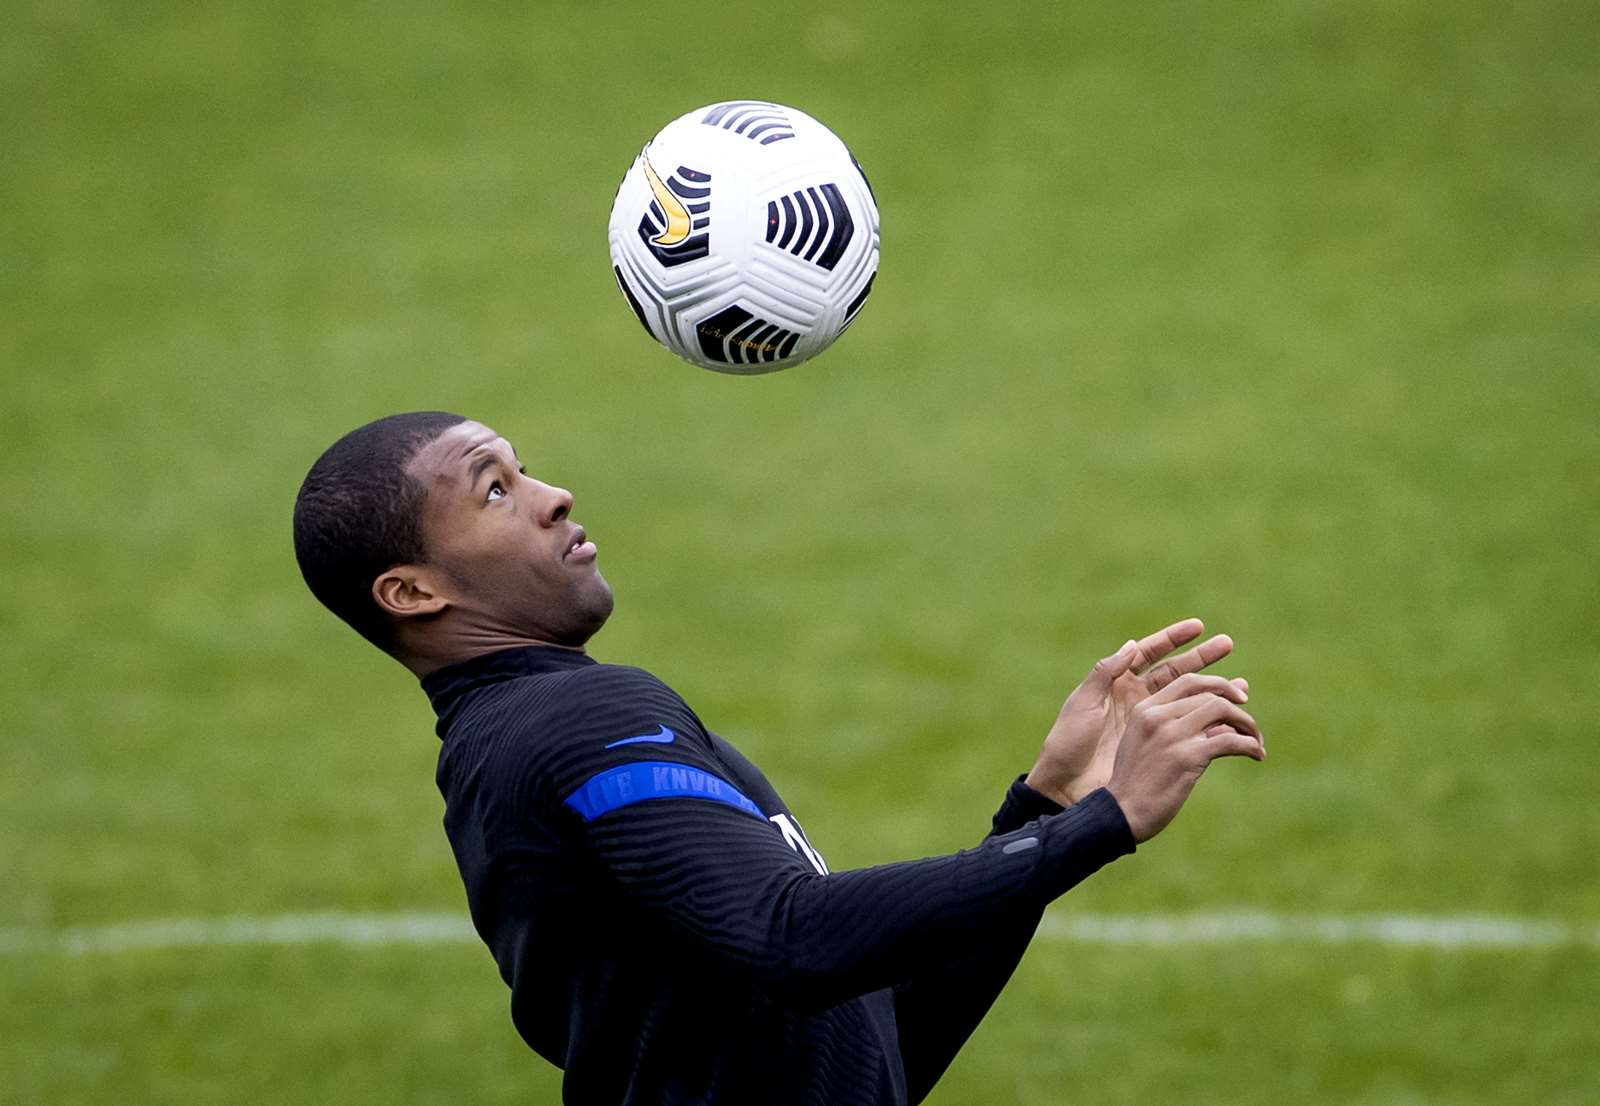 Wijnaldum joins PSG: When you change one team for another, you want it to be same or better